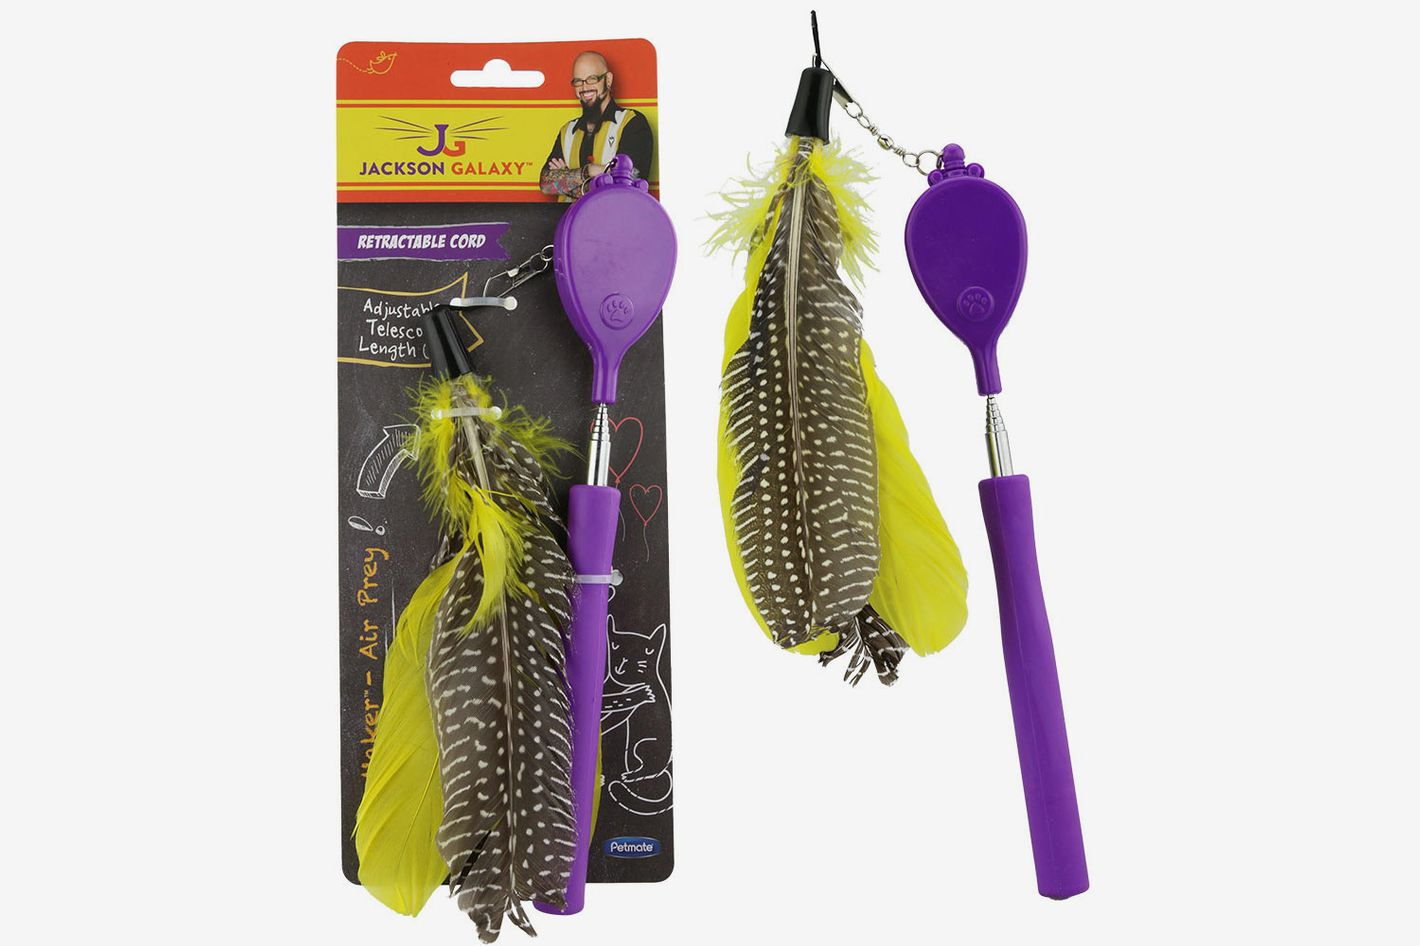 Jackson Galaxy Air Prey Telescoping Wand Teaser